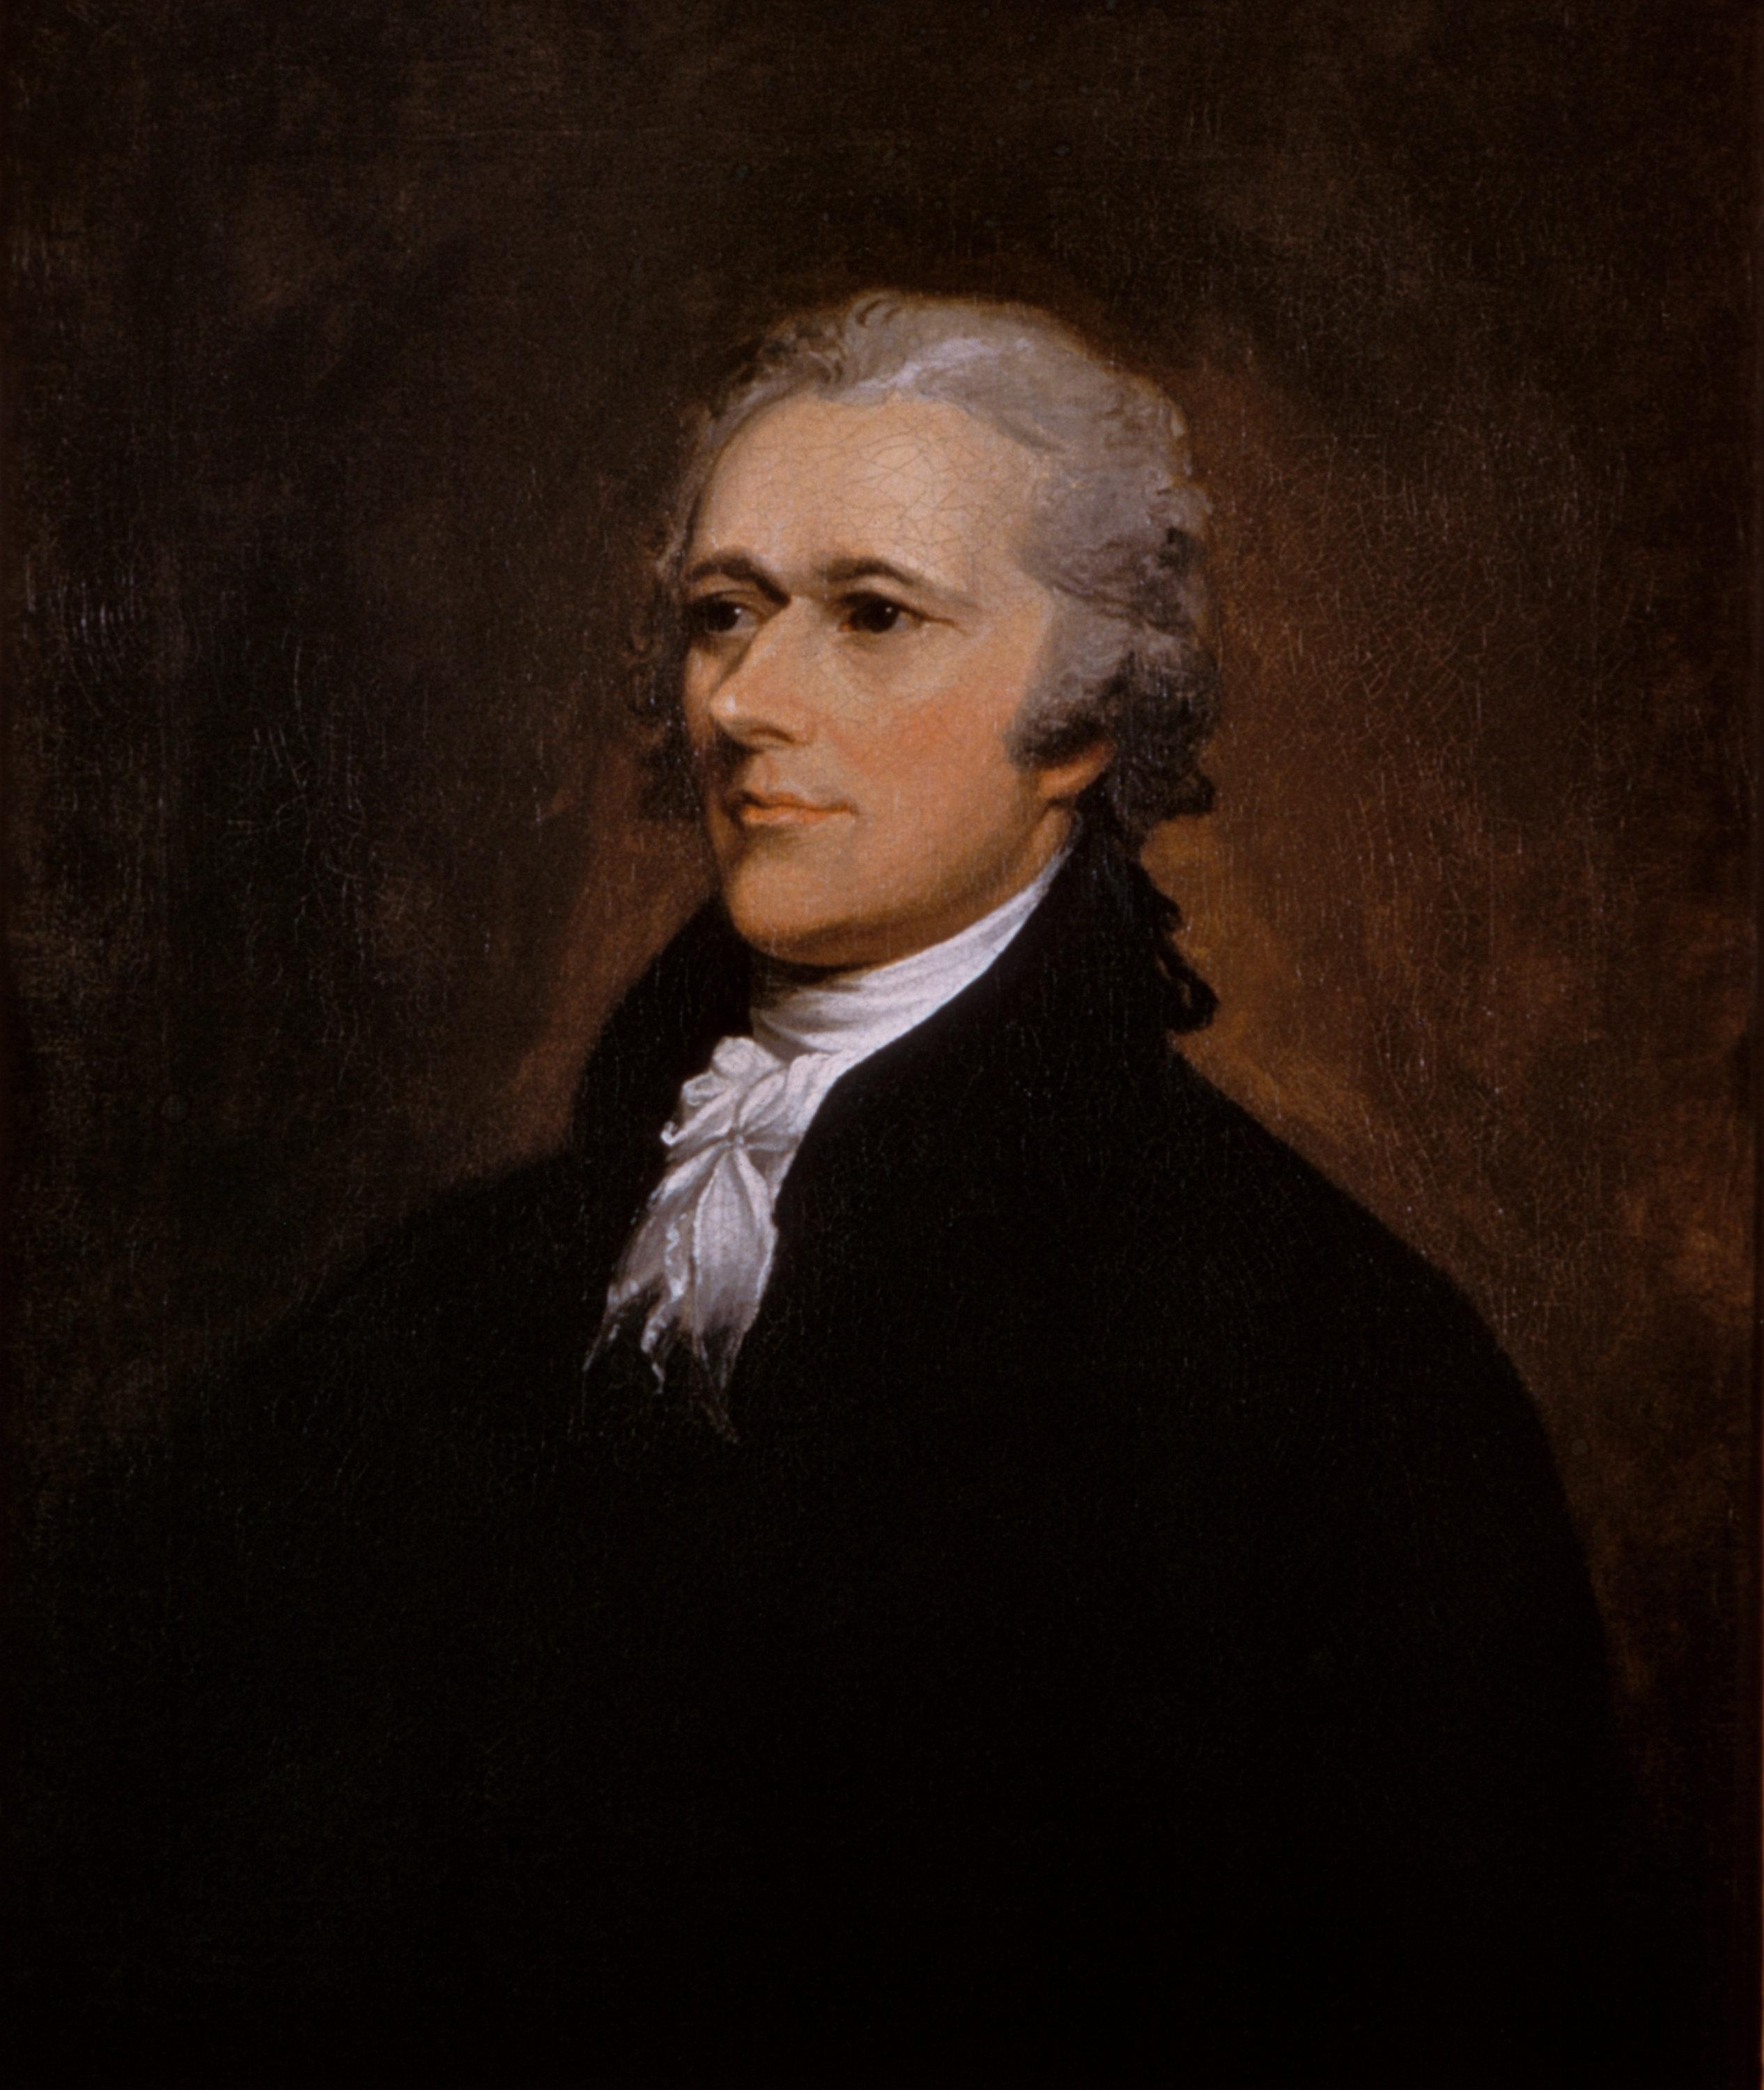 Founding Father of the United States